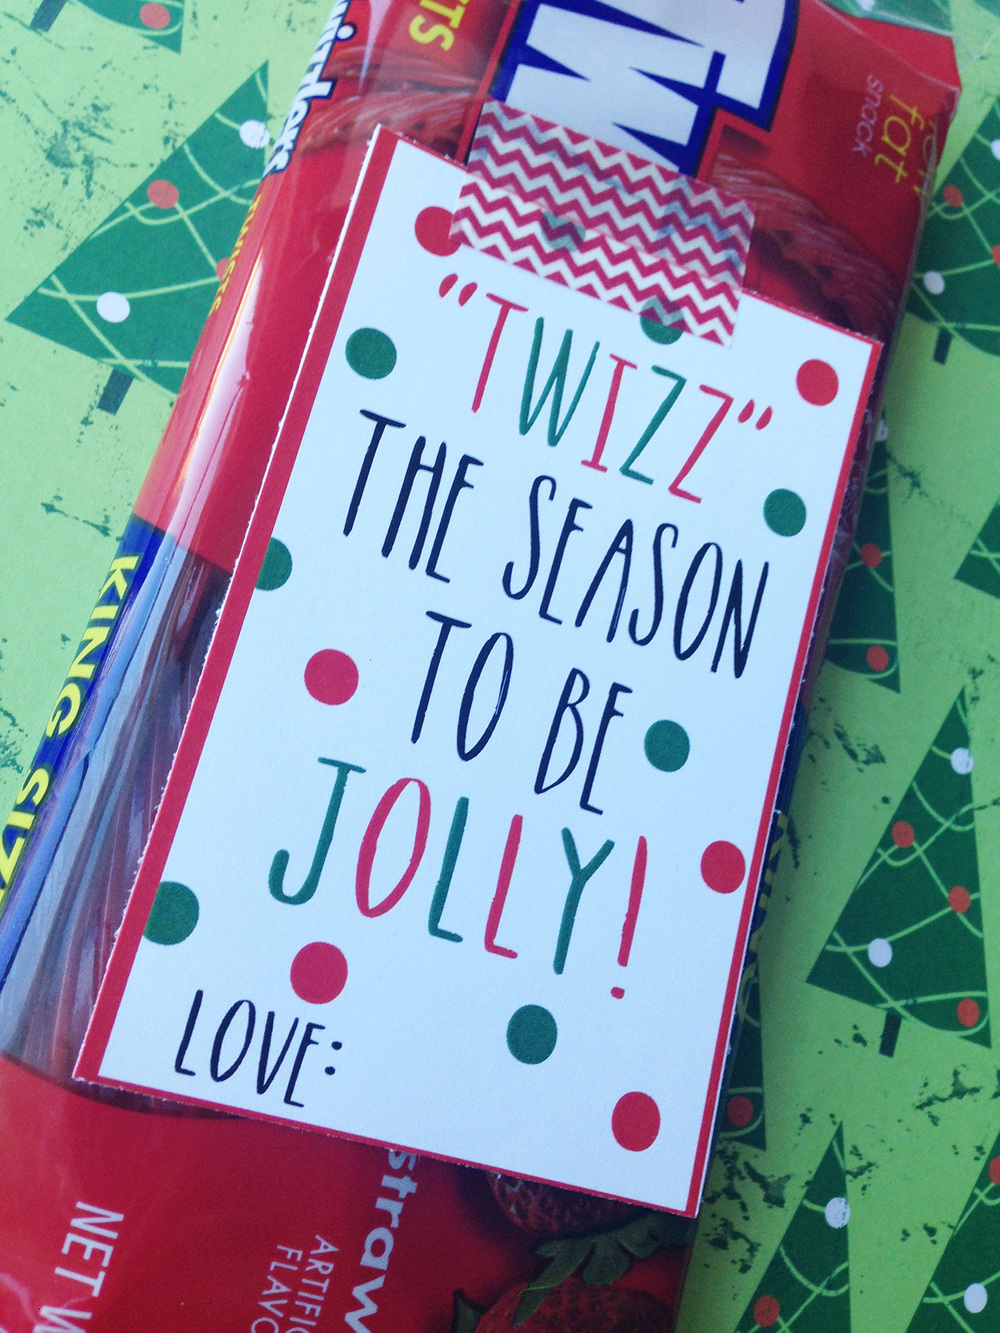 Twizz the season!